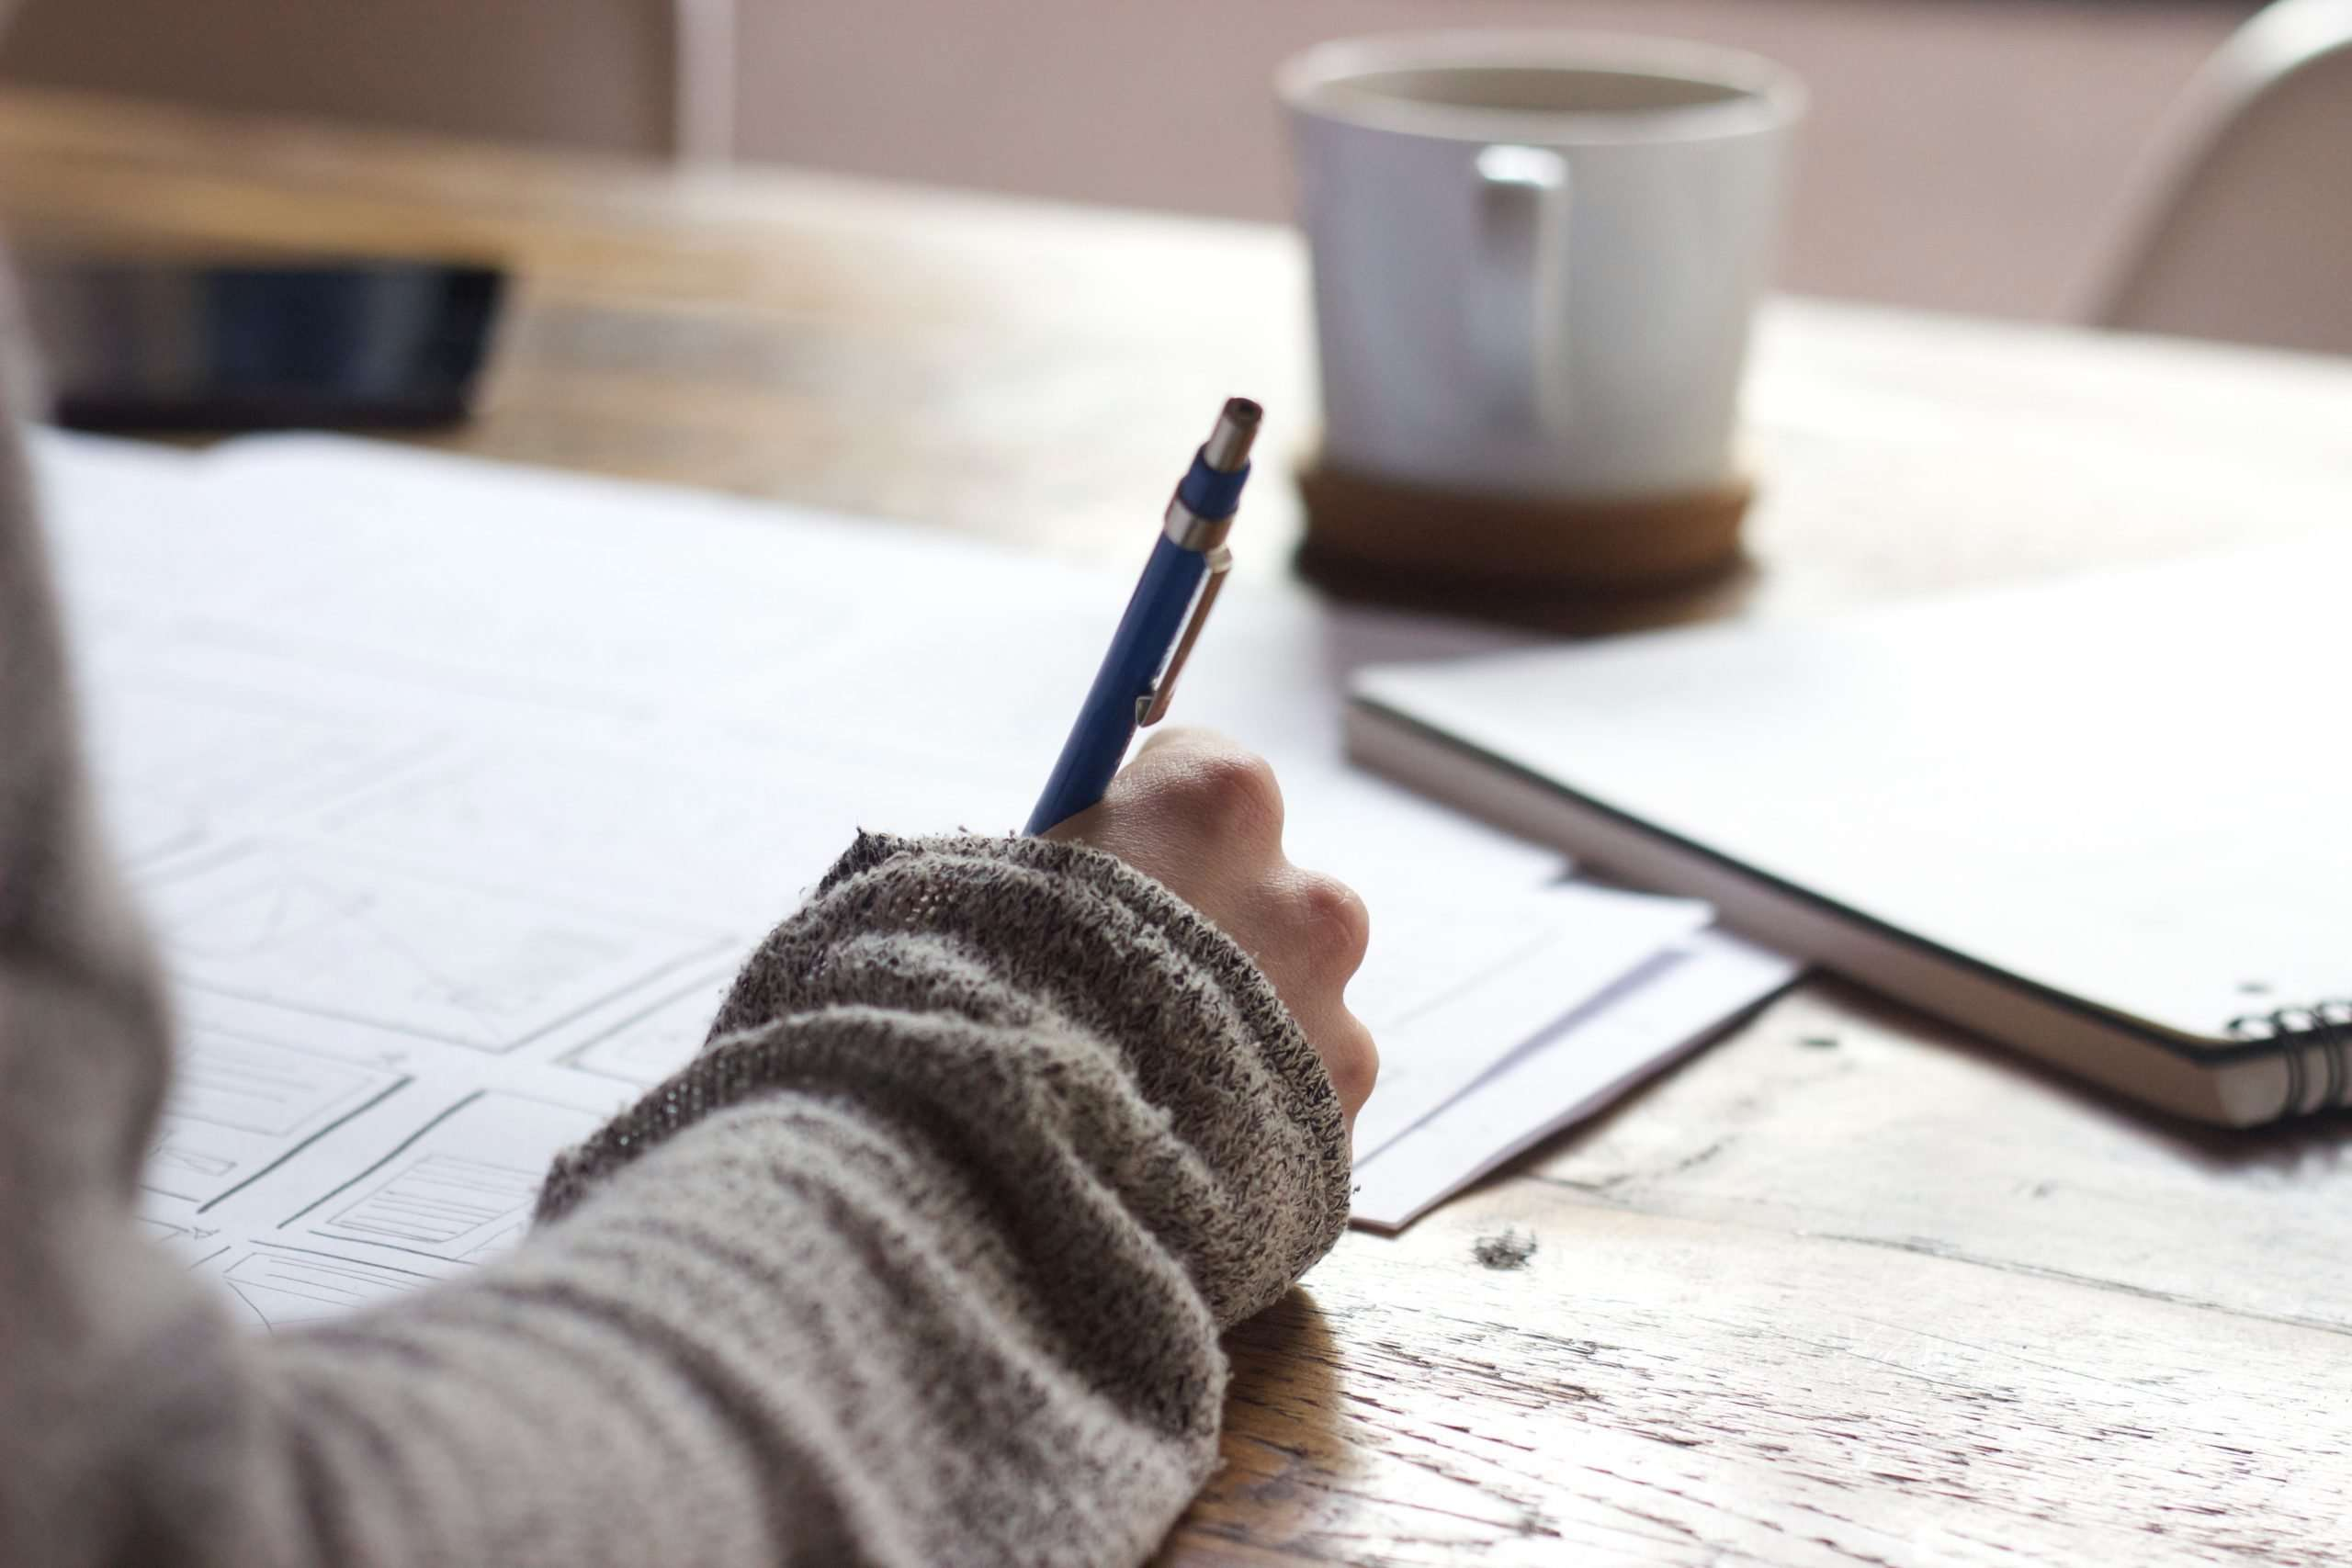 A woman in a light brown jumper is holding a pen and writing. she is sat at a wooden table and there is a cup of coffee in front of her